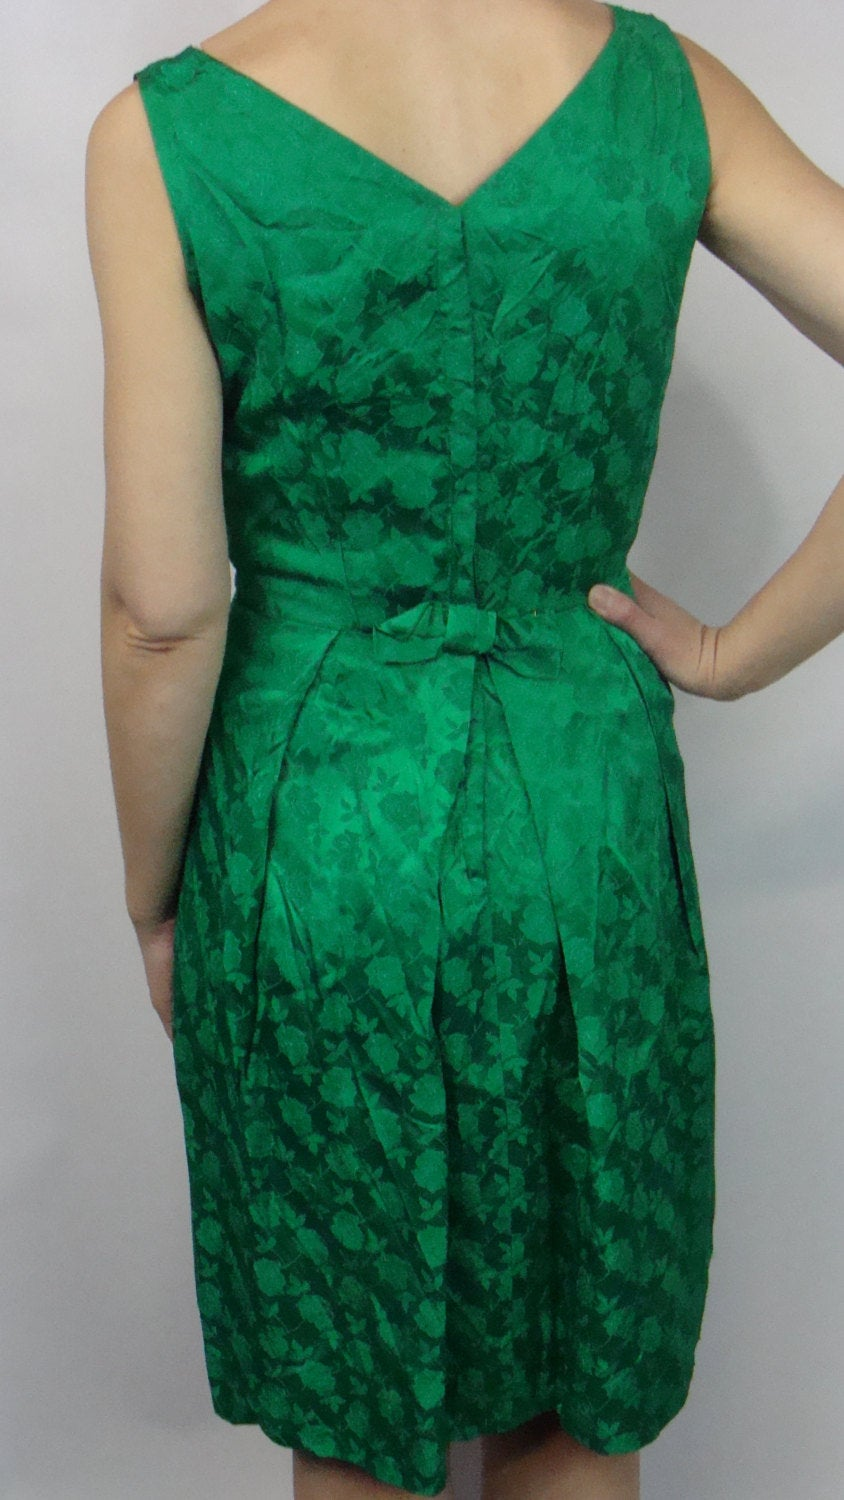 EMERALD GREEN satin jacquard COCKTAIL dress vintage 1960's 60's S M (D1)